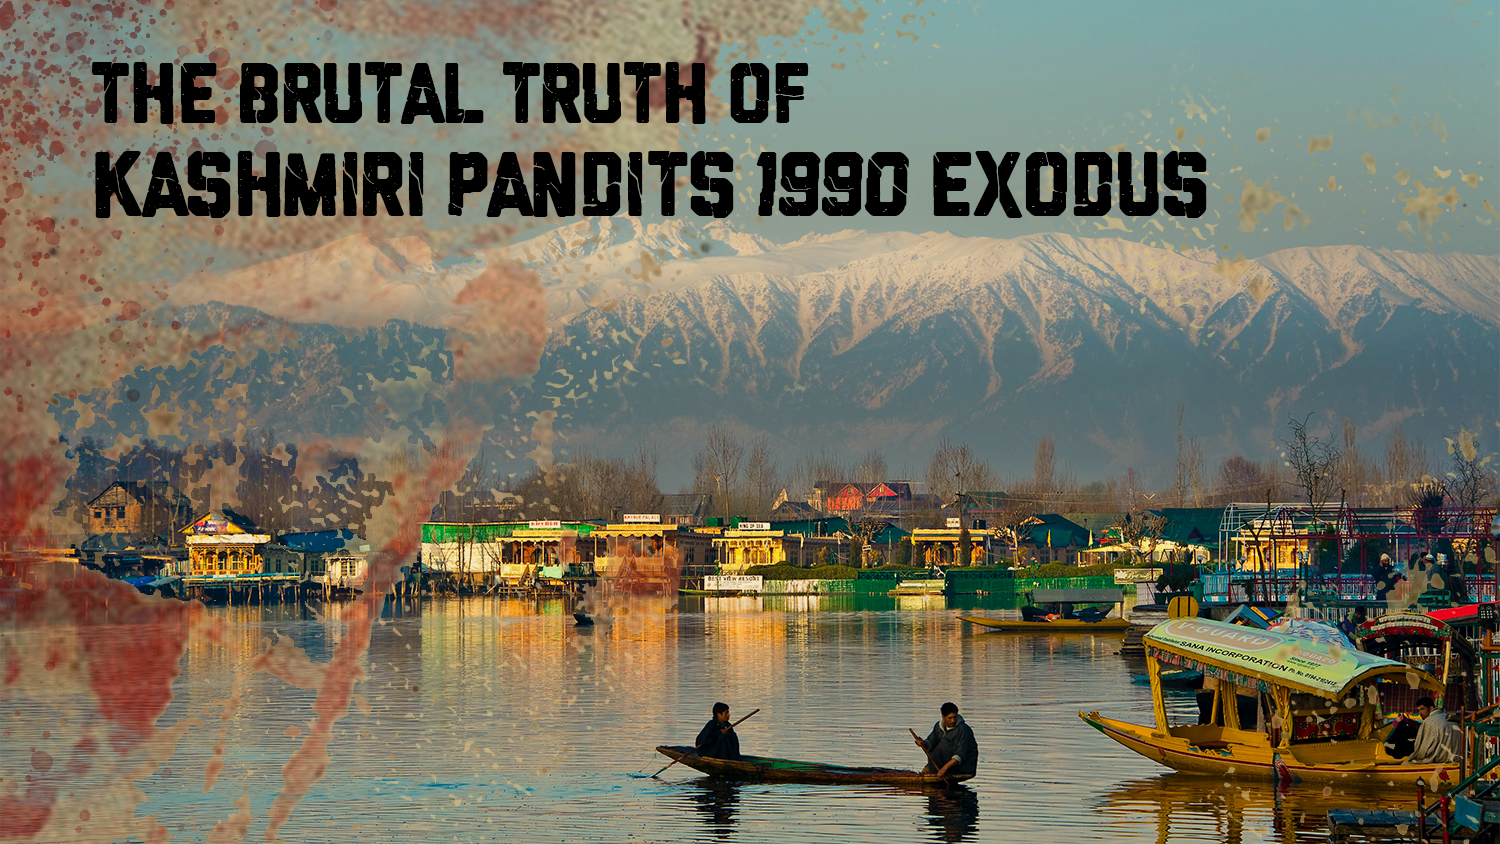 A Home Lost Forever To The 1990 Exodus: A Traumatic Memoir Of A Kashmiri Pandit Family